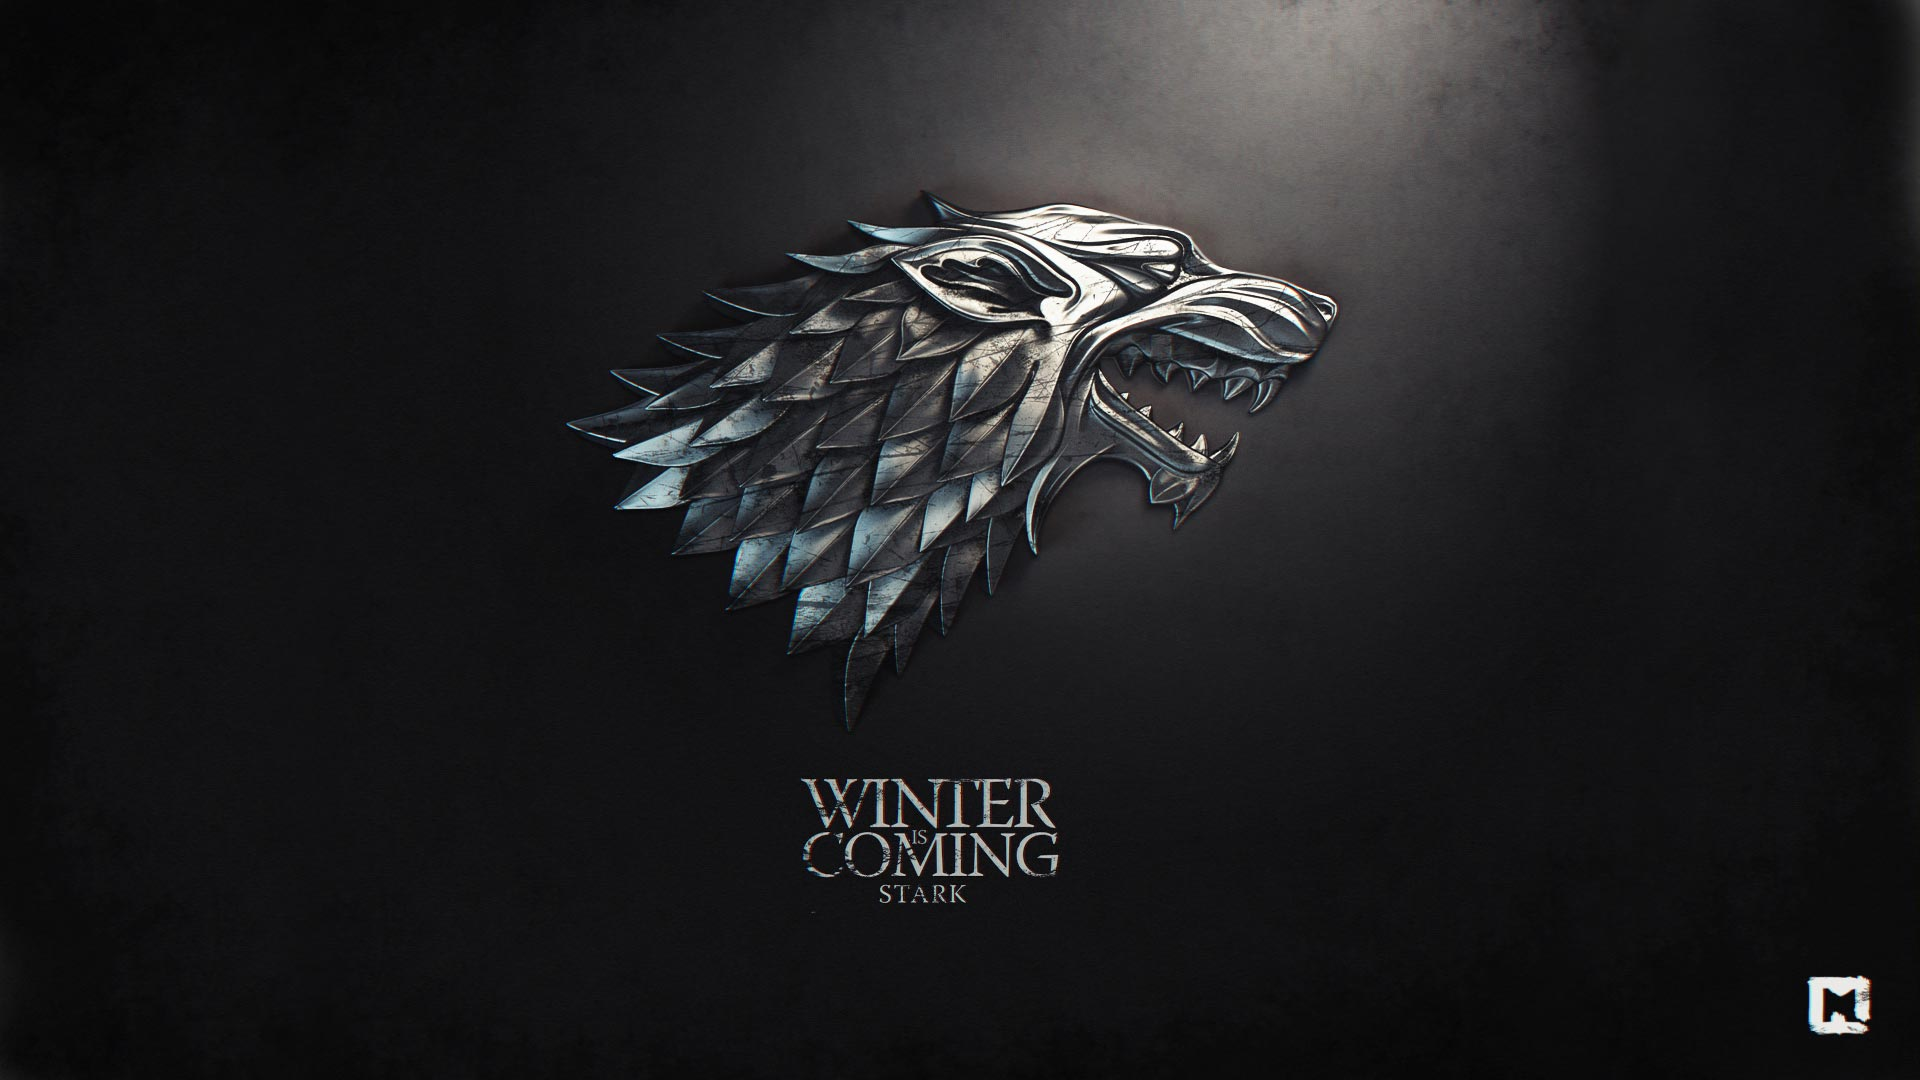 Houses Of Game Of Thrones Theme For Windows 10 8 7